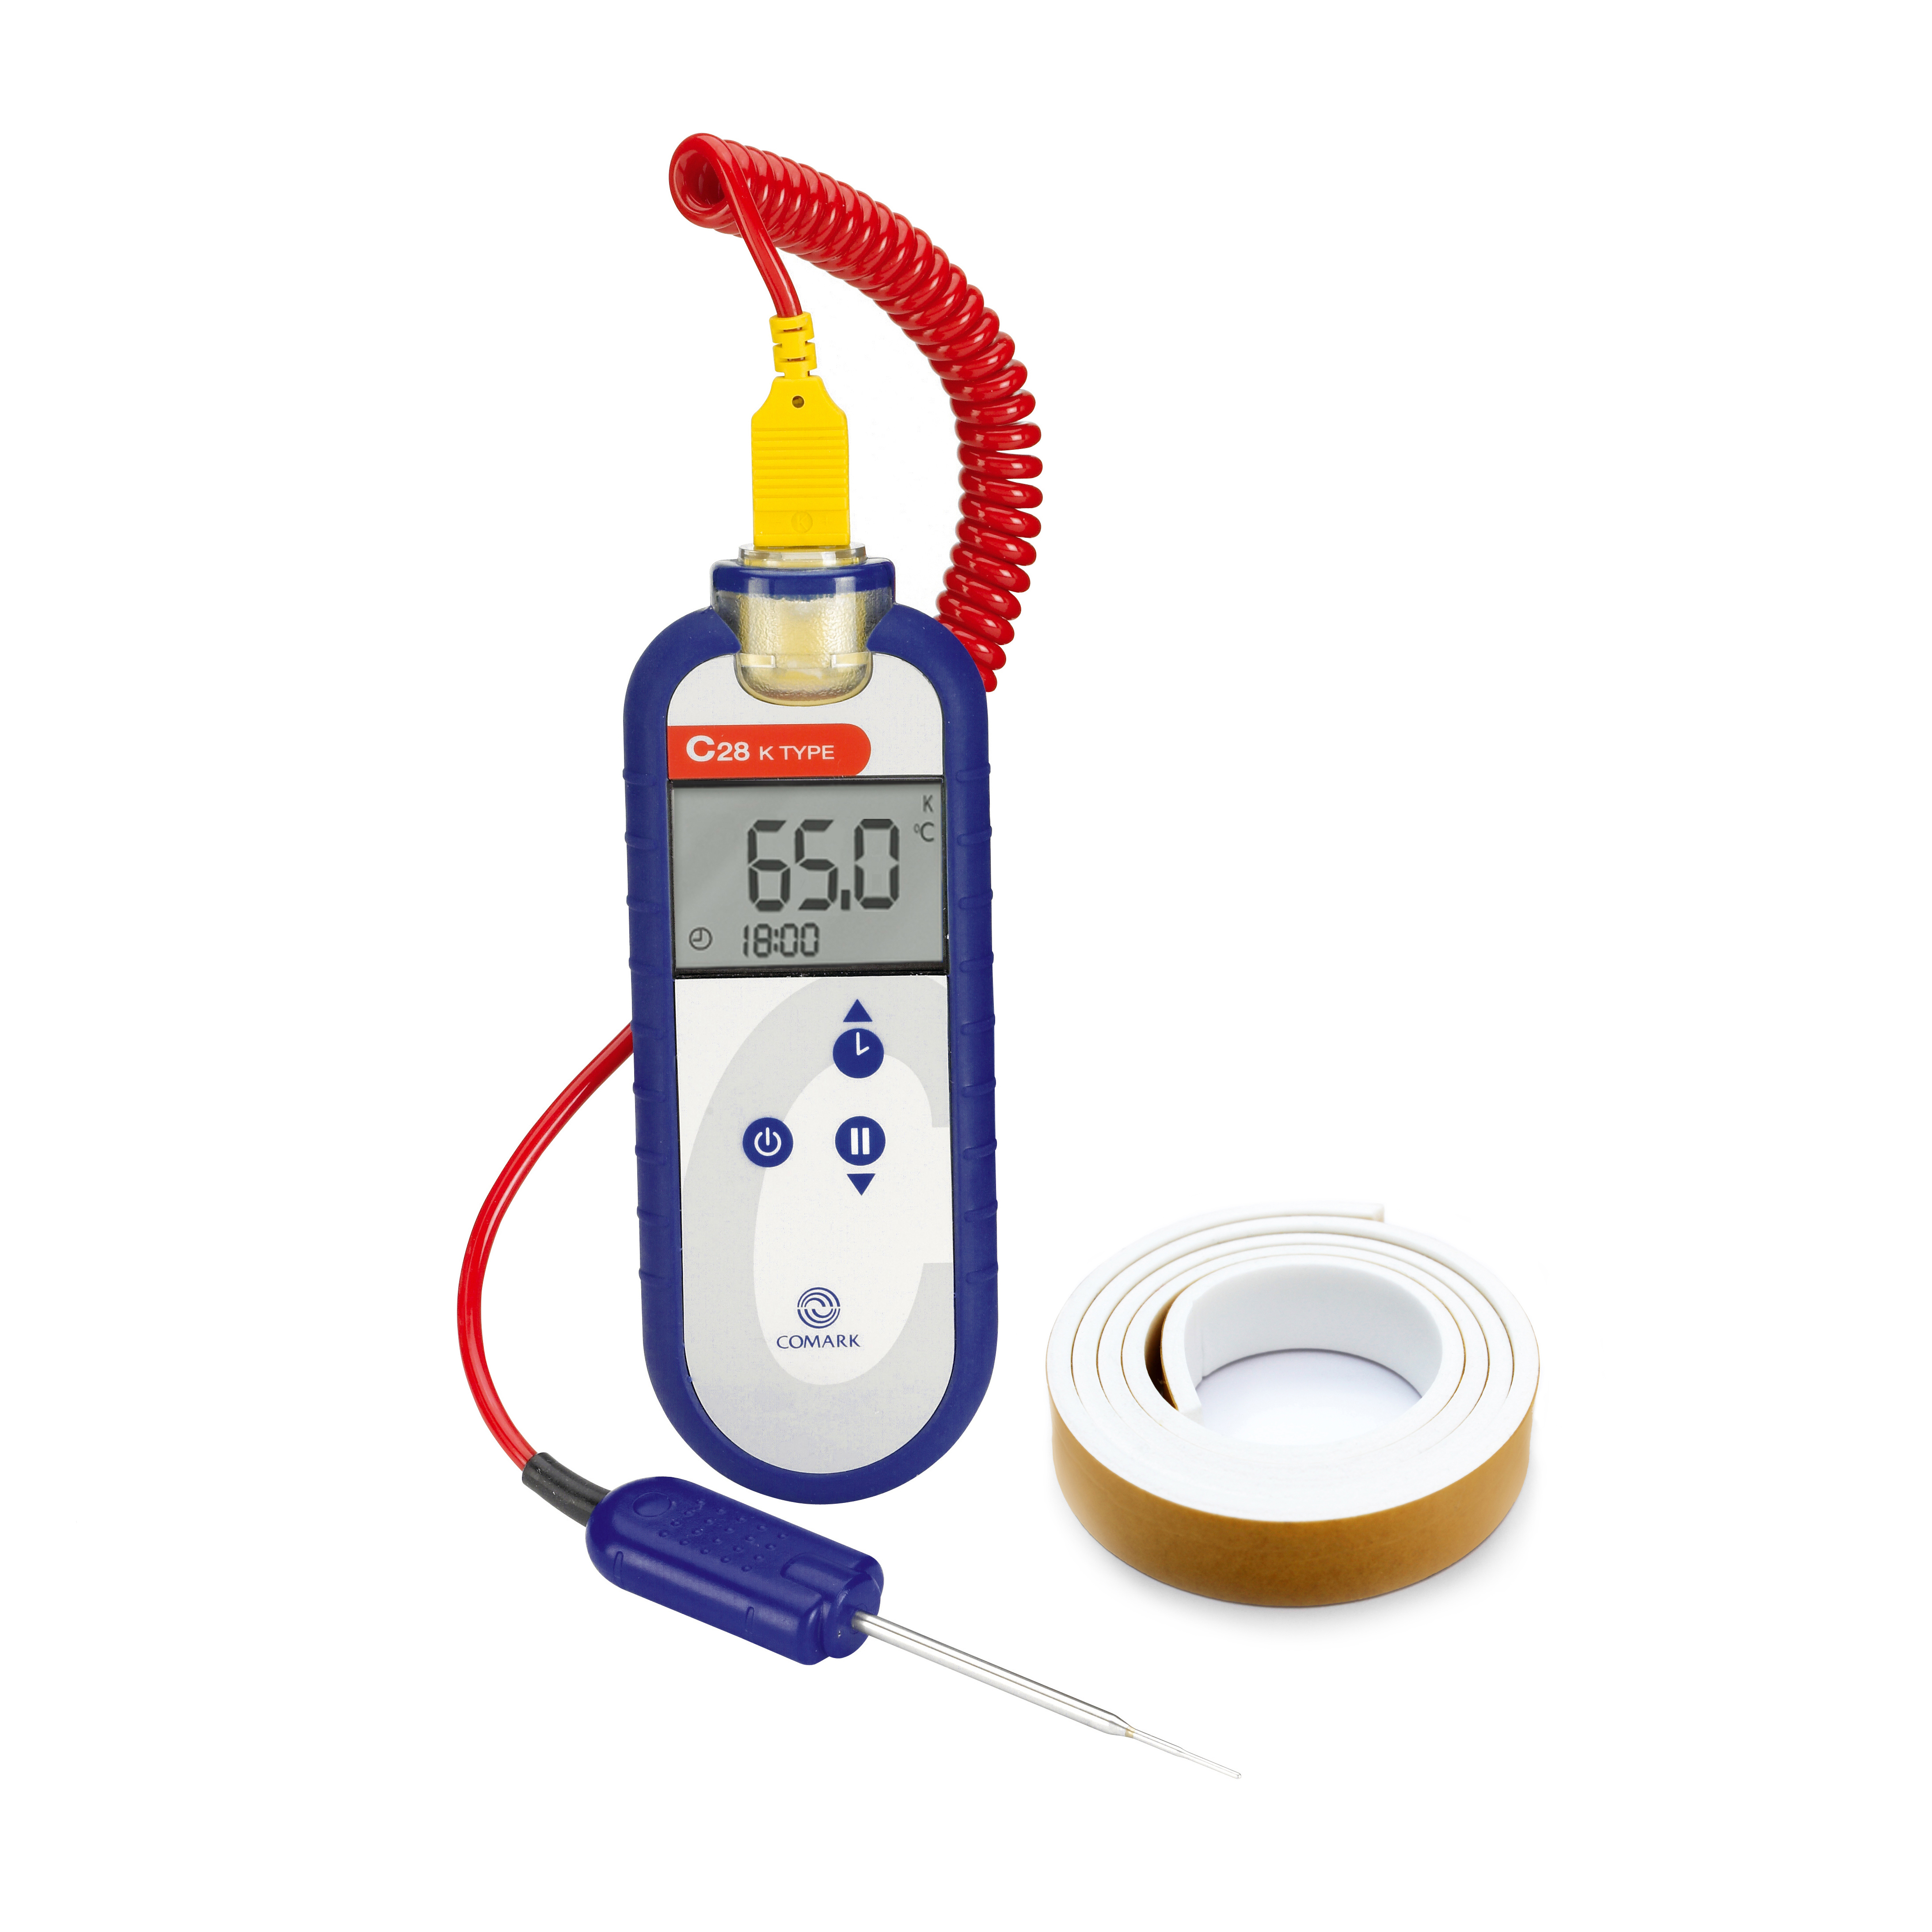 Comark Instruments (Fluke) C48/P21 thermometer, thermocouple